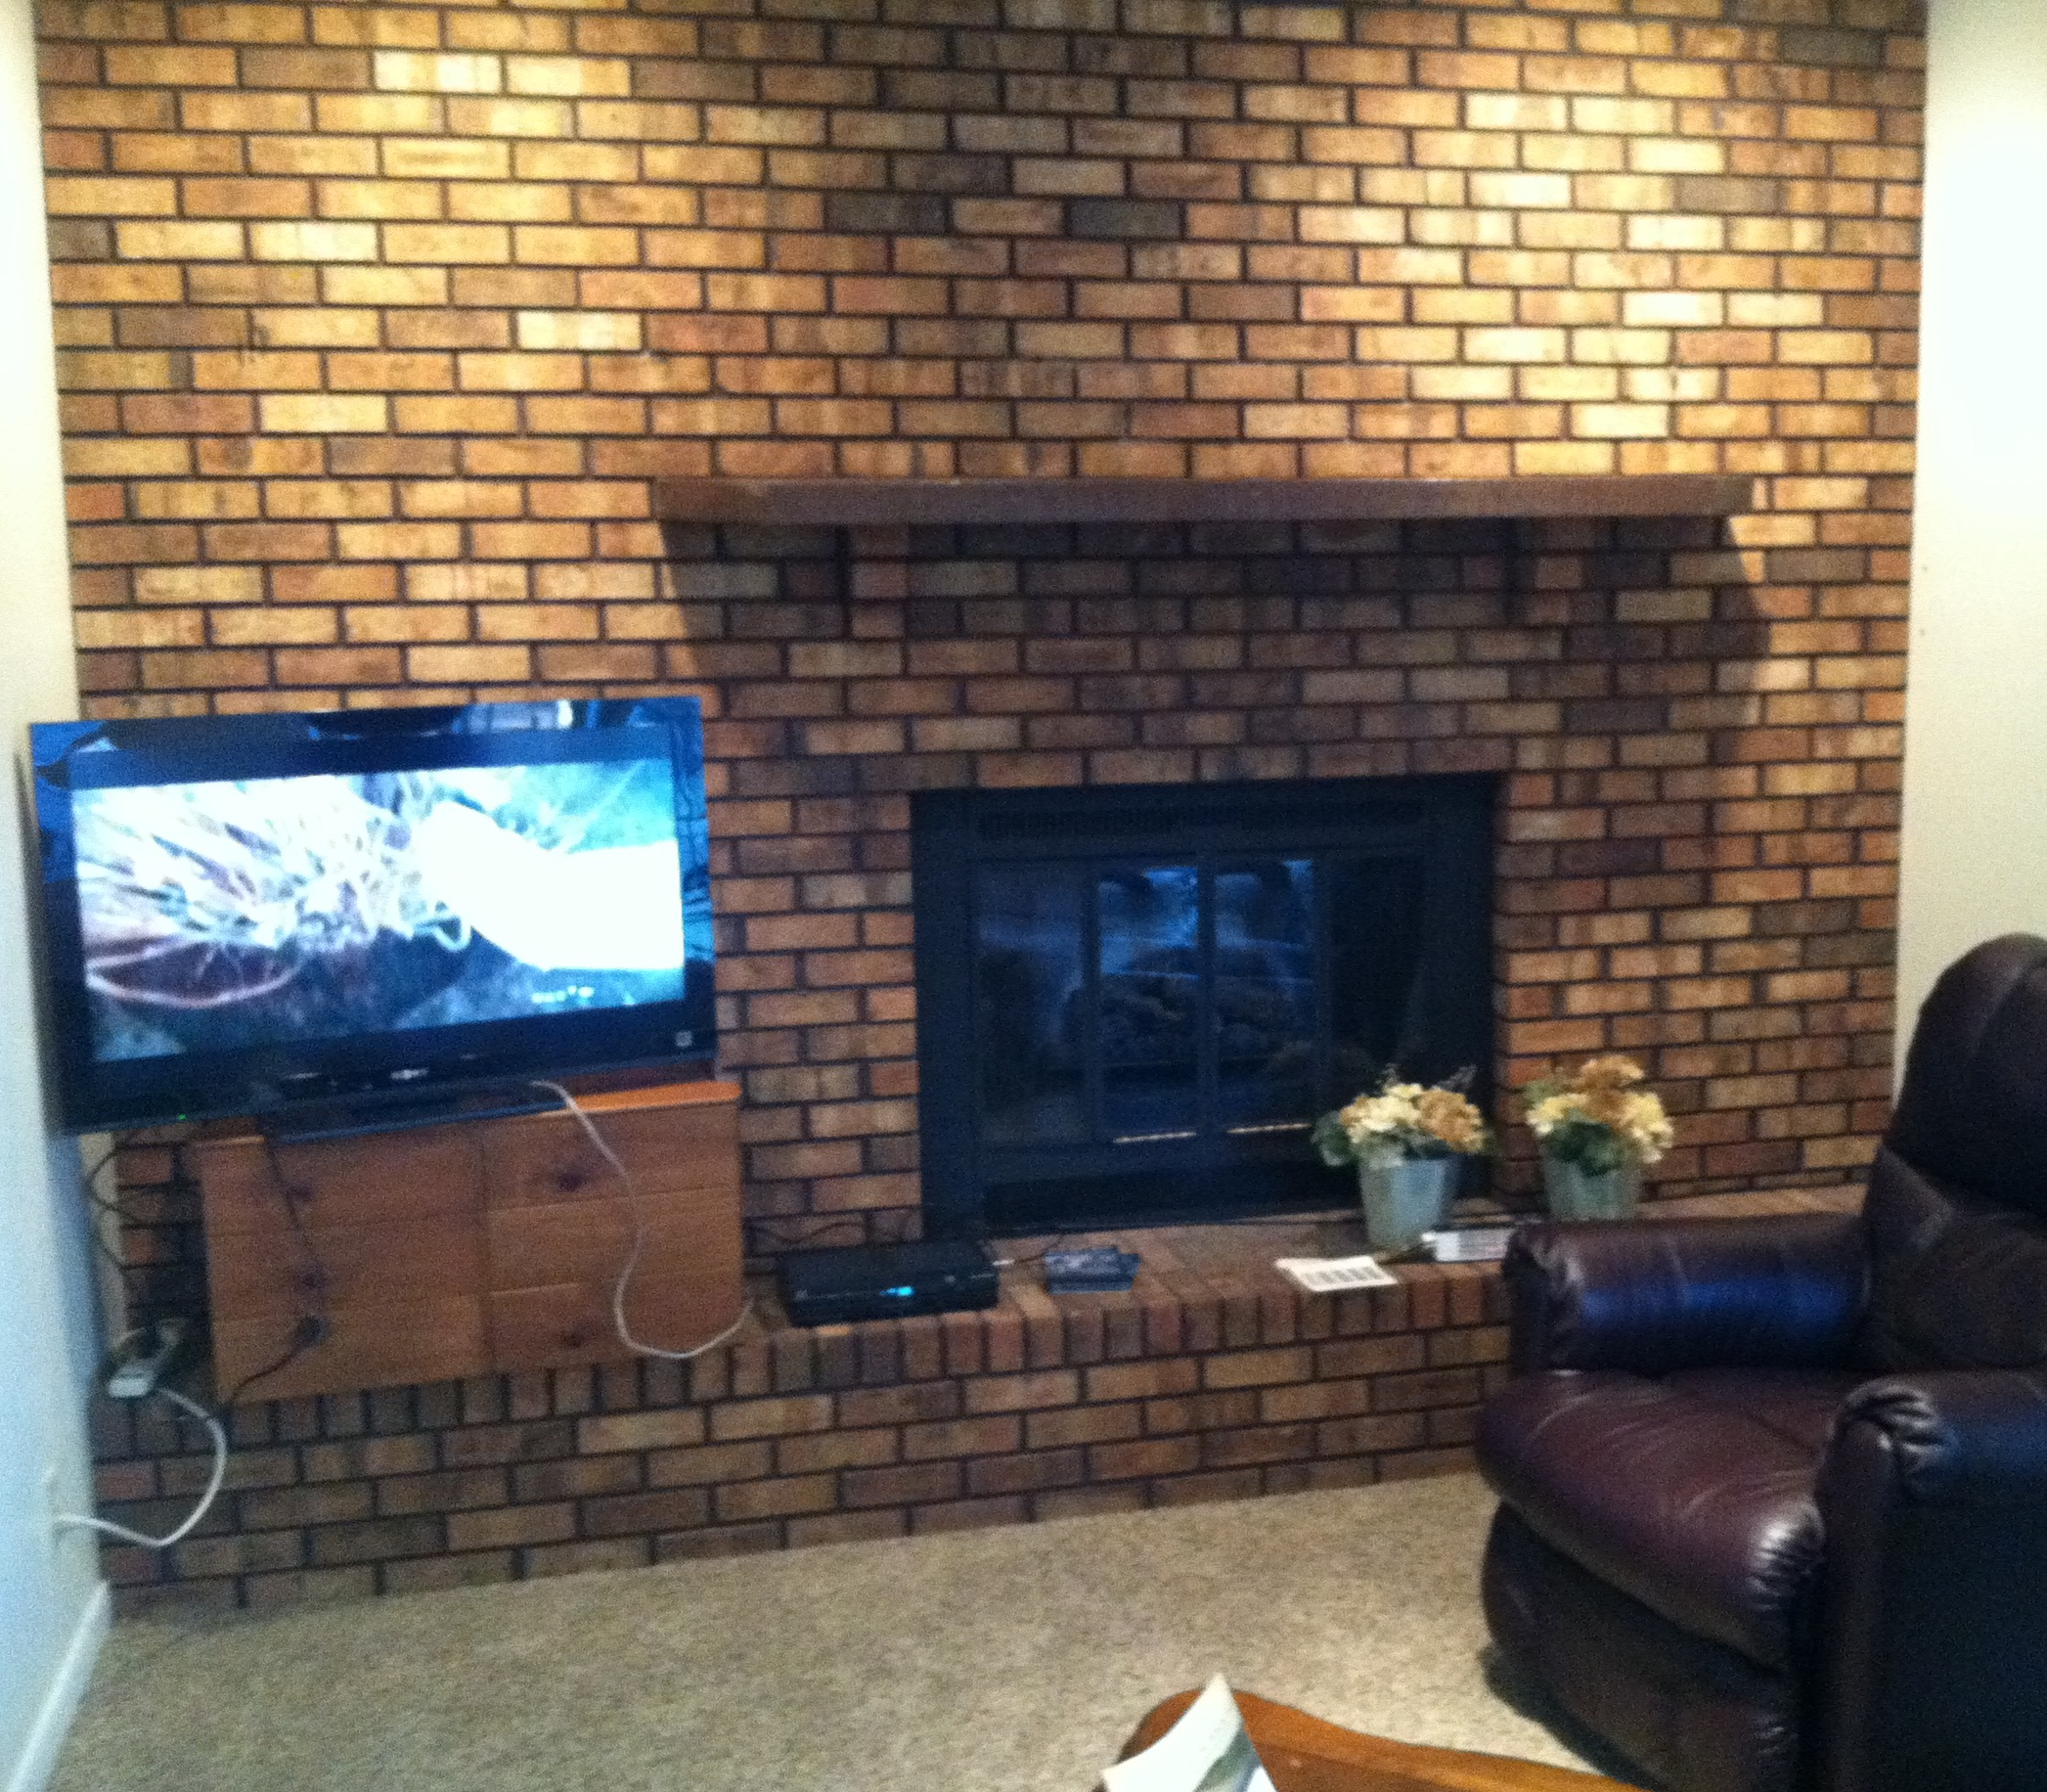 Alf Img Showing Whitewash Brick Fireplace Diy